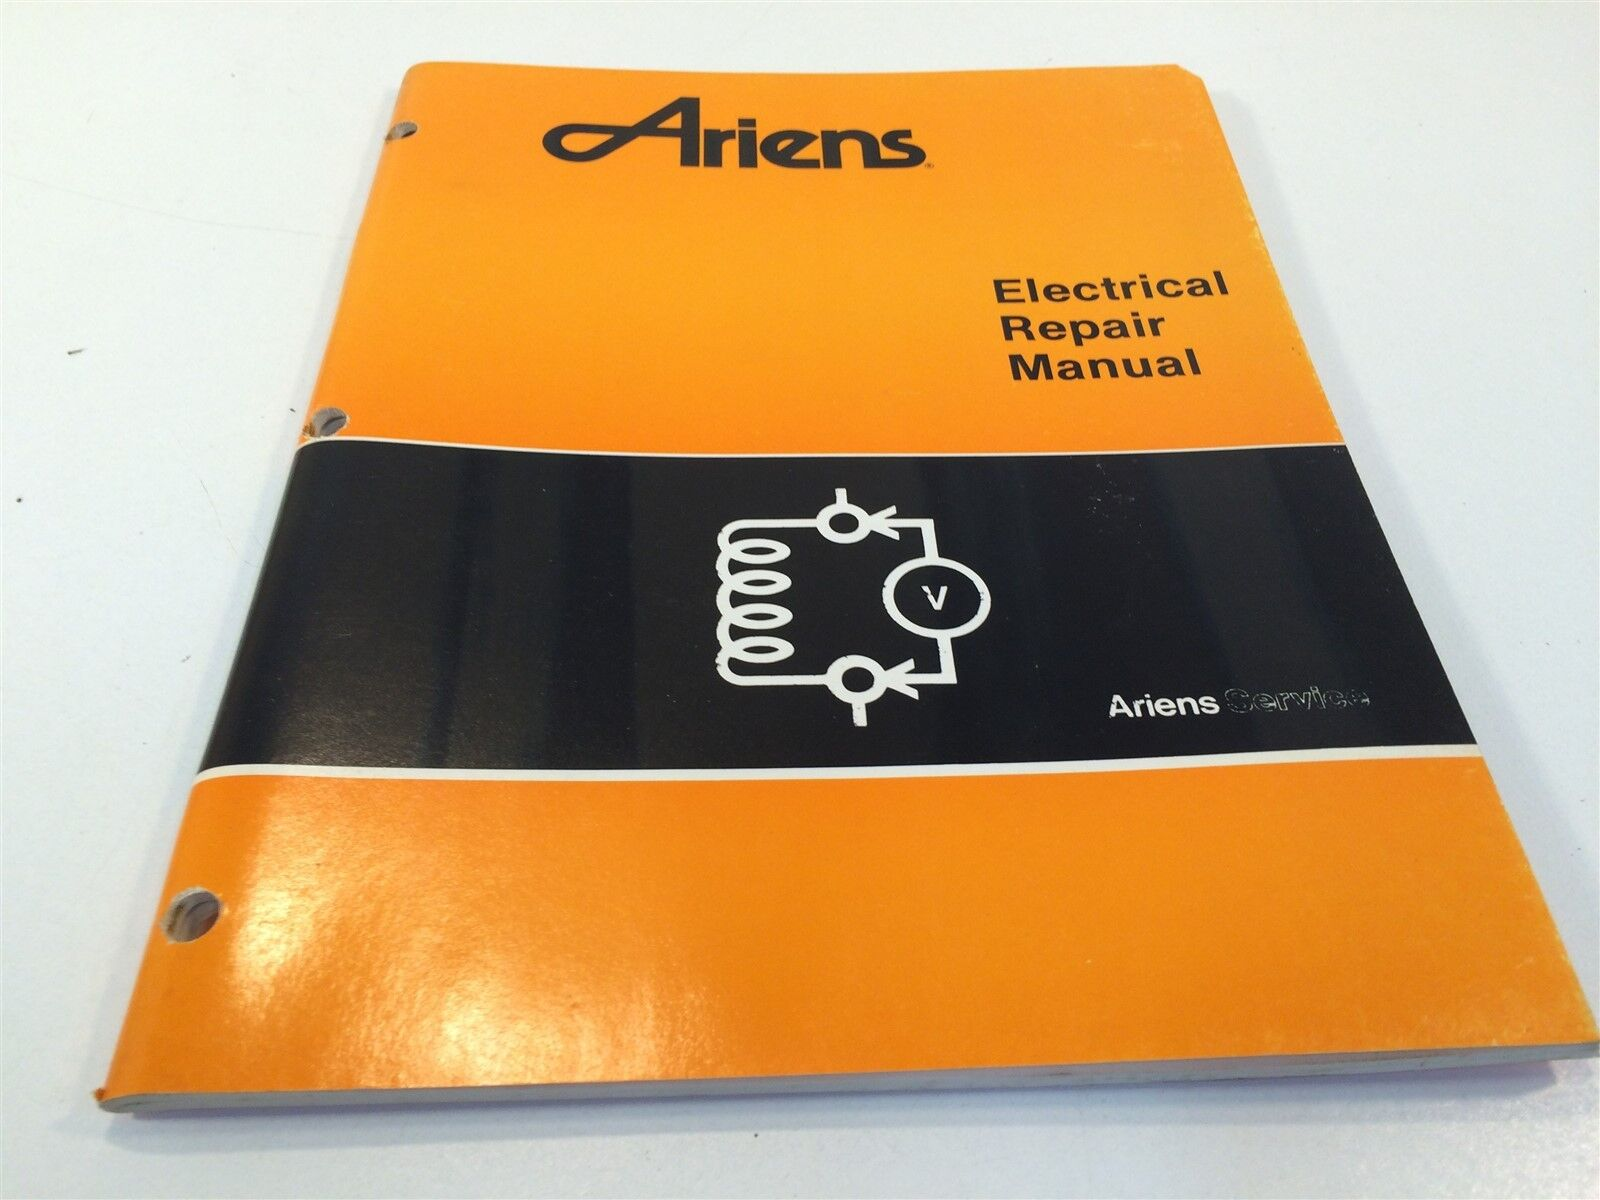 Ariens Service Electrical Repair Manual Wundr Shop Diagram And Parts List For Mtd Ridingmowertractorparts Model 760